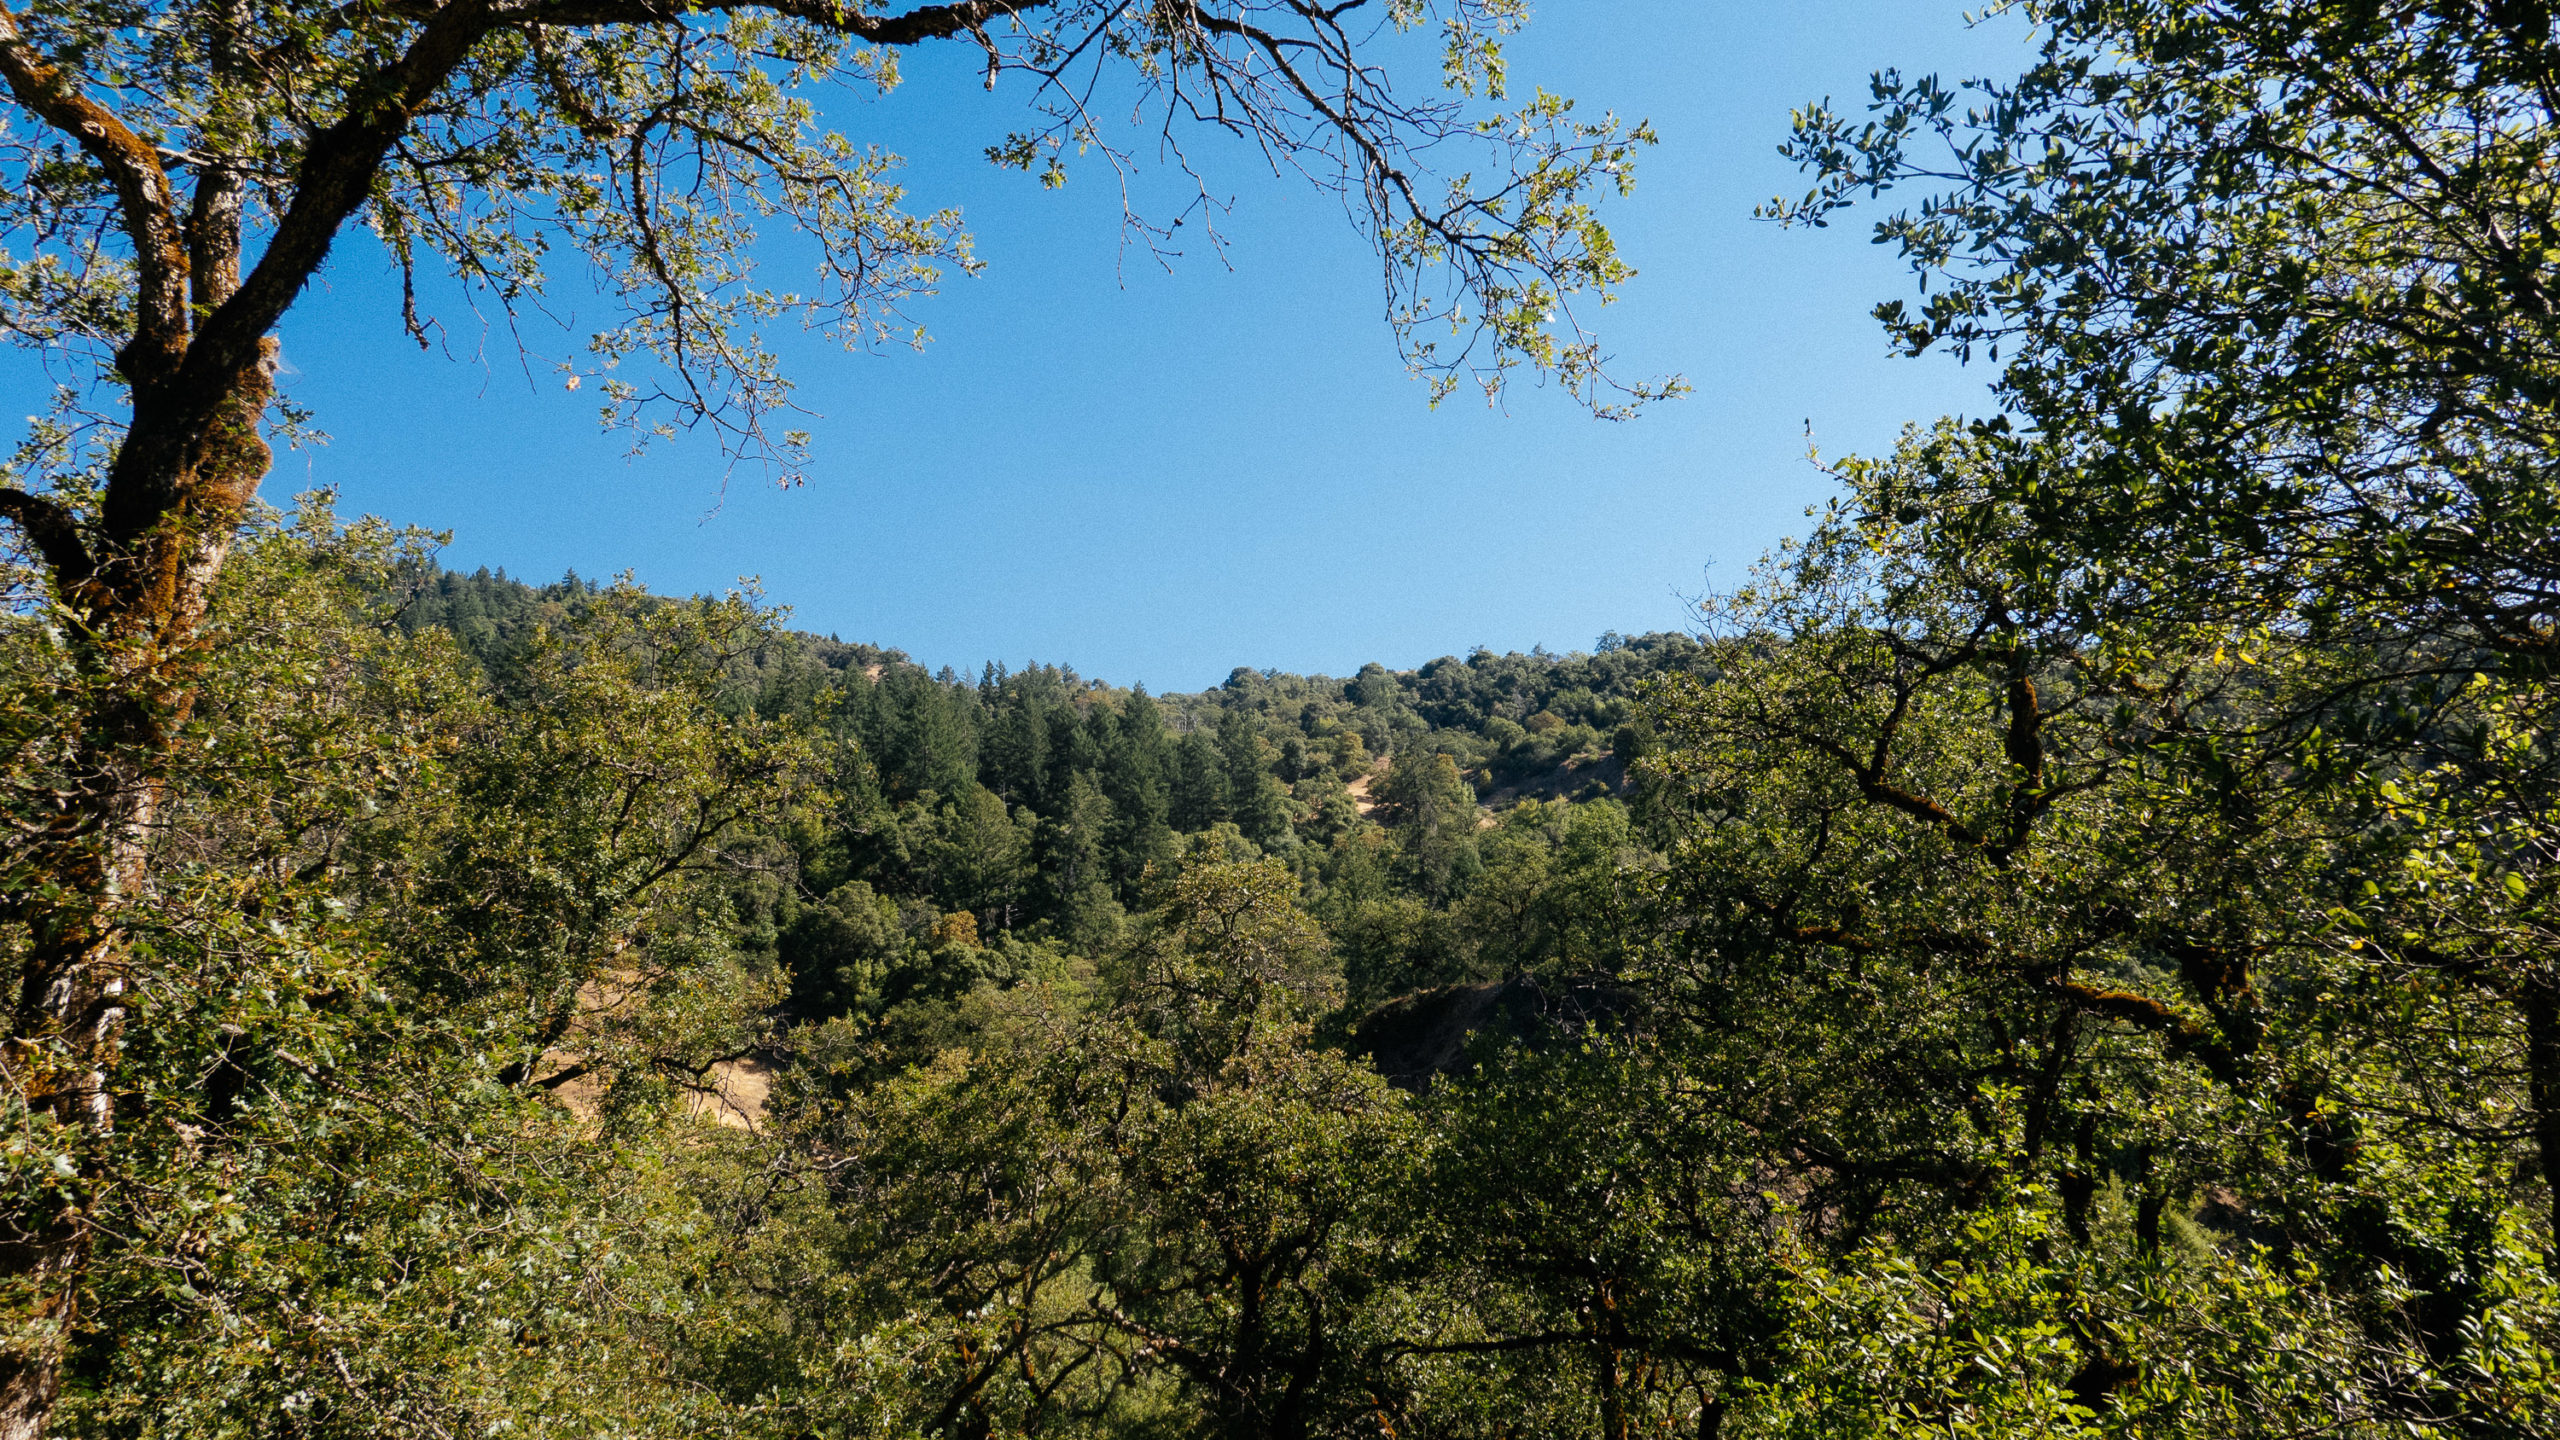 Tree covered hill and blue sky in Northern California